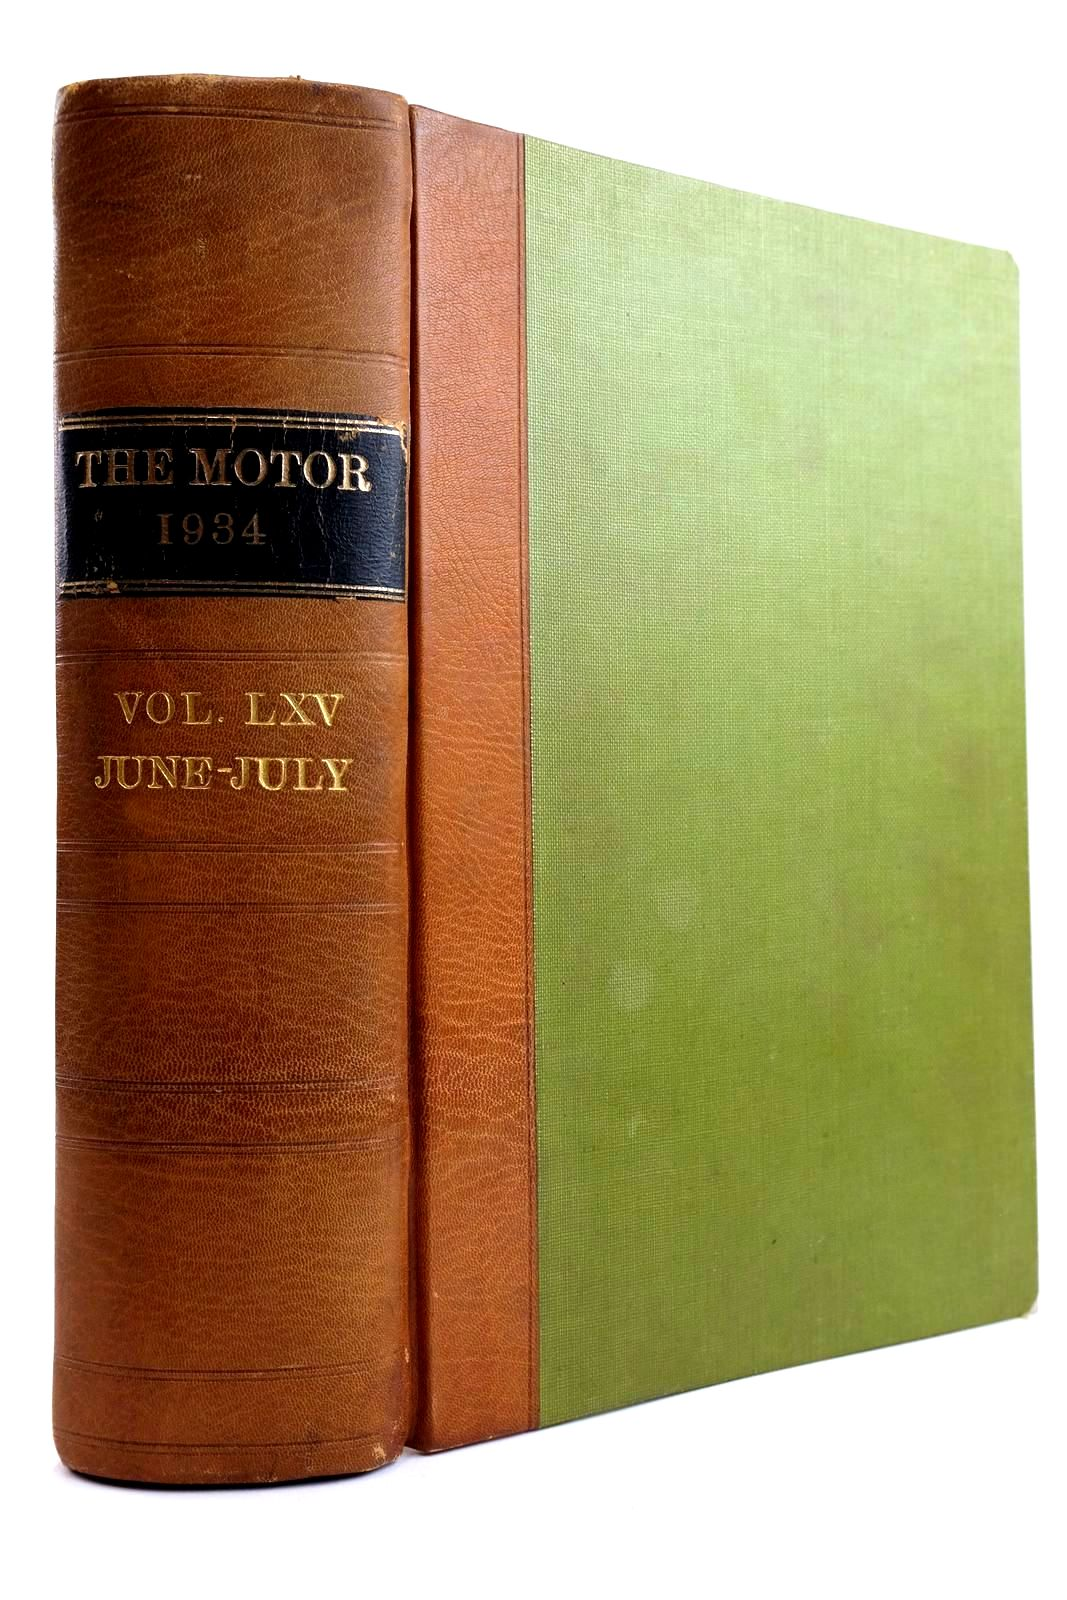 Photo of THE MOTOR 1934 VOL. LXV JUNE-JULY published by Ford Motor Company Limited (STOCK CODE: 2133935)  for sale by Stella & Rose's Books